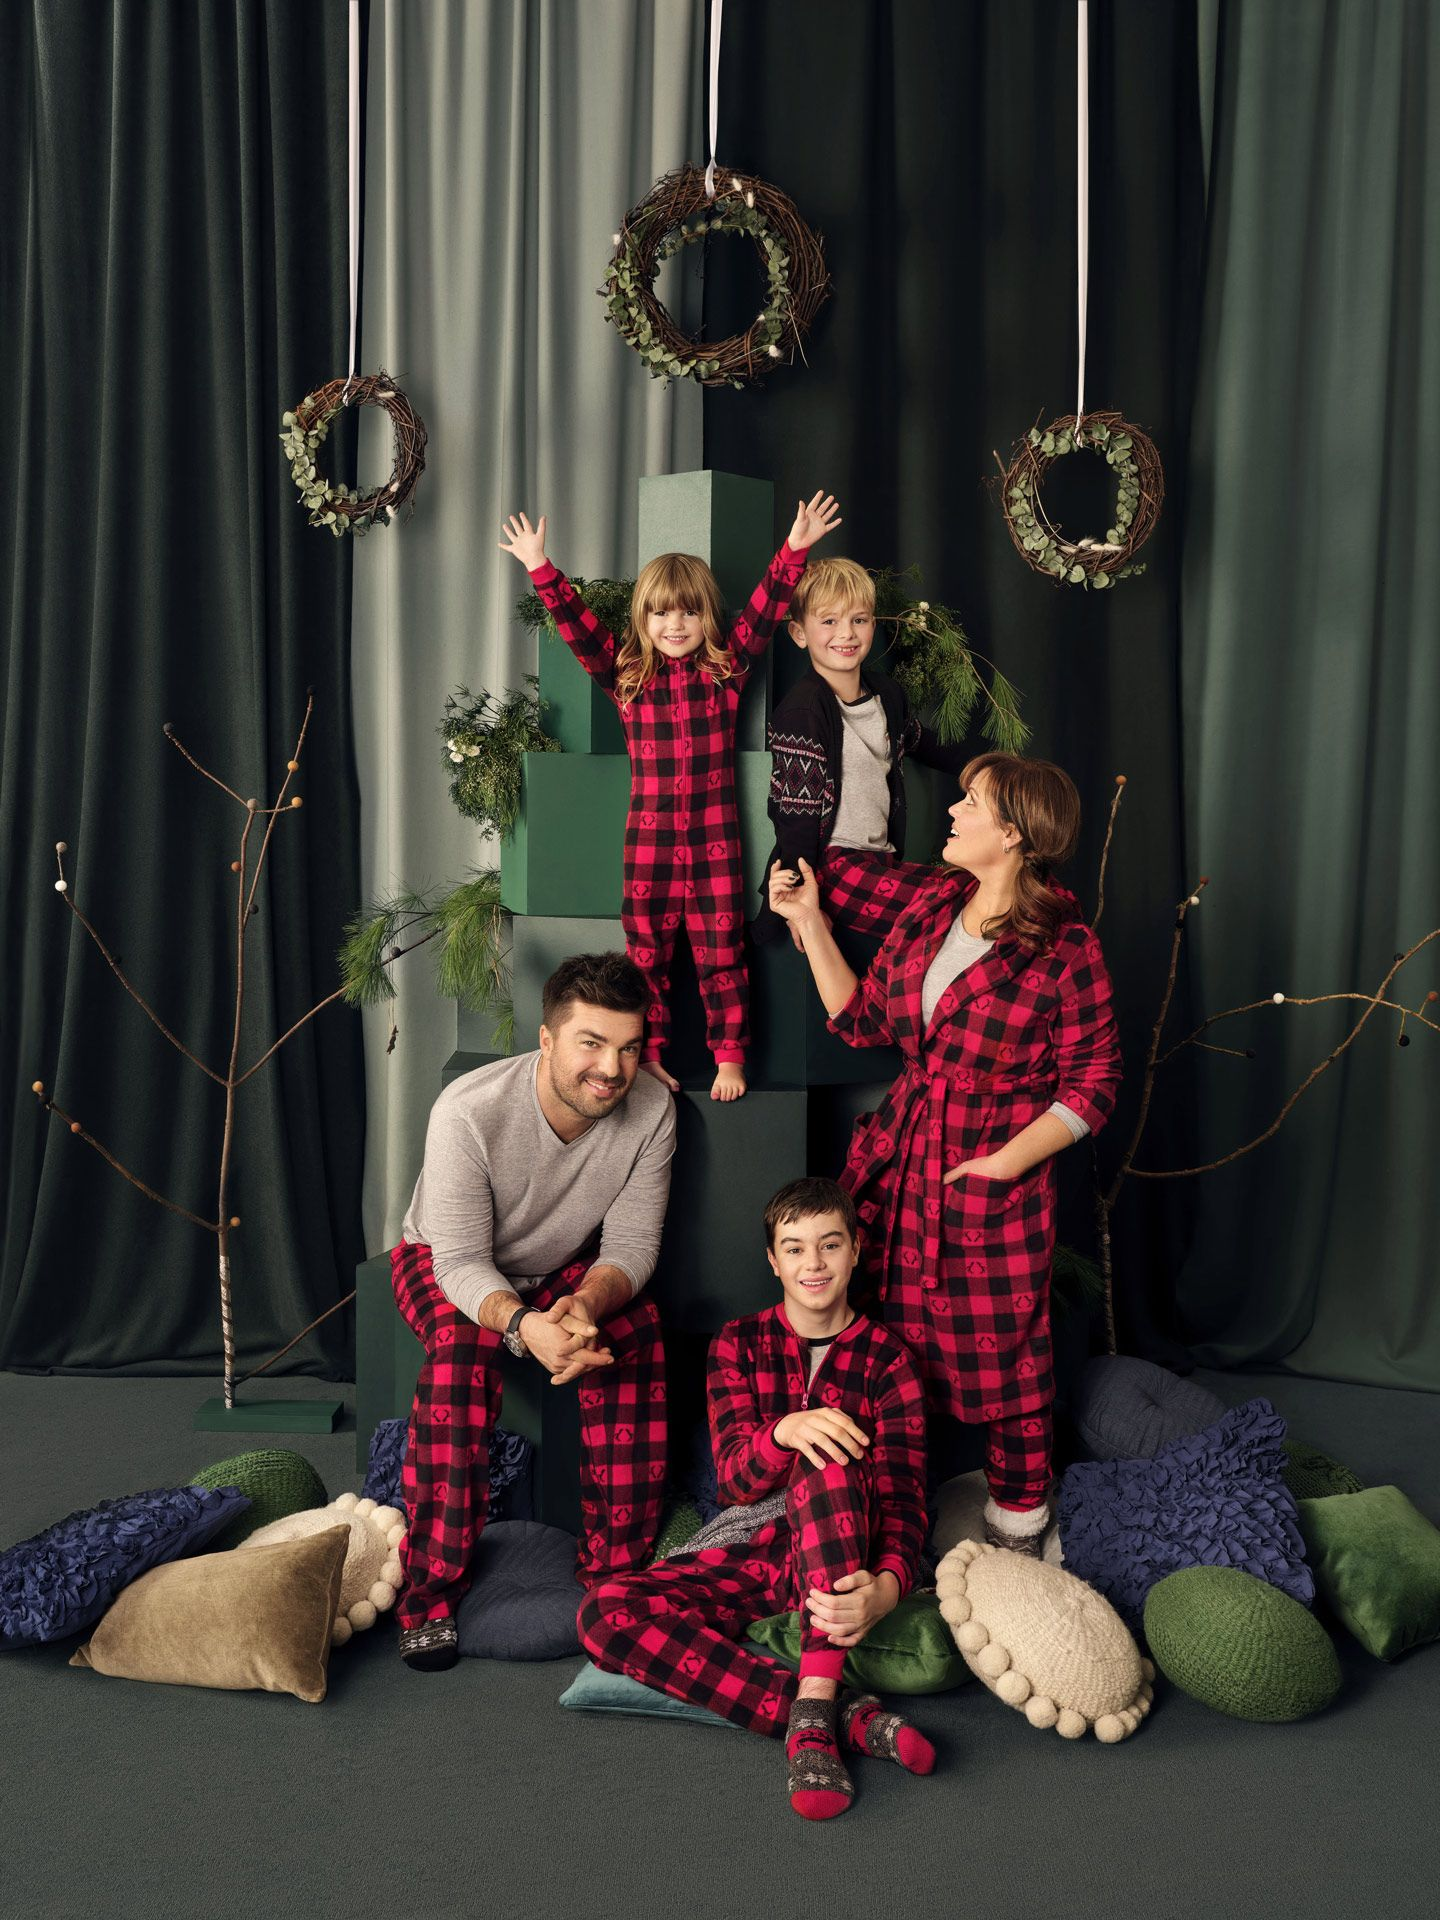 portrait of family Paquin-marcotte in festive decor wearing matching pajamas for Aubainerie Christmas campaign about united family photographed and filmed by Maxyme G Delisle with artistic direction and set design by Studio TB